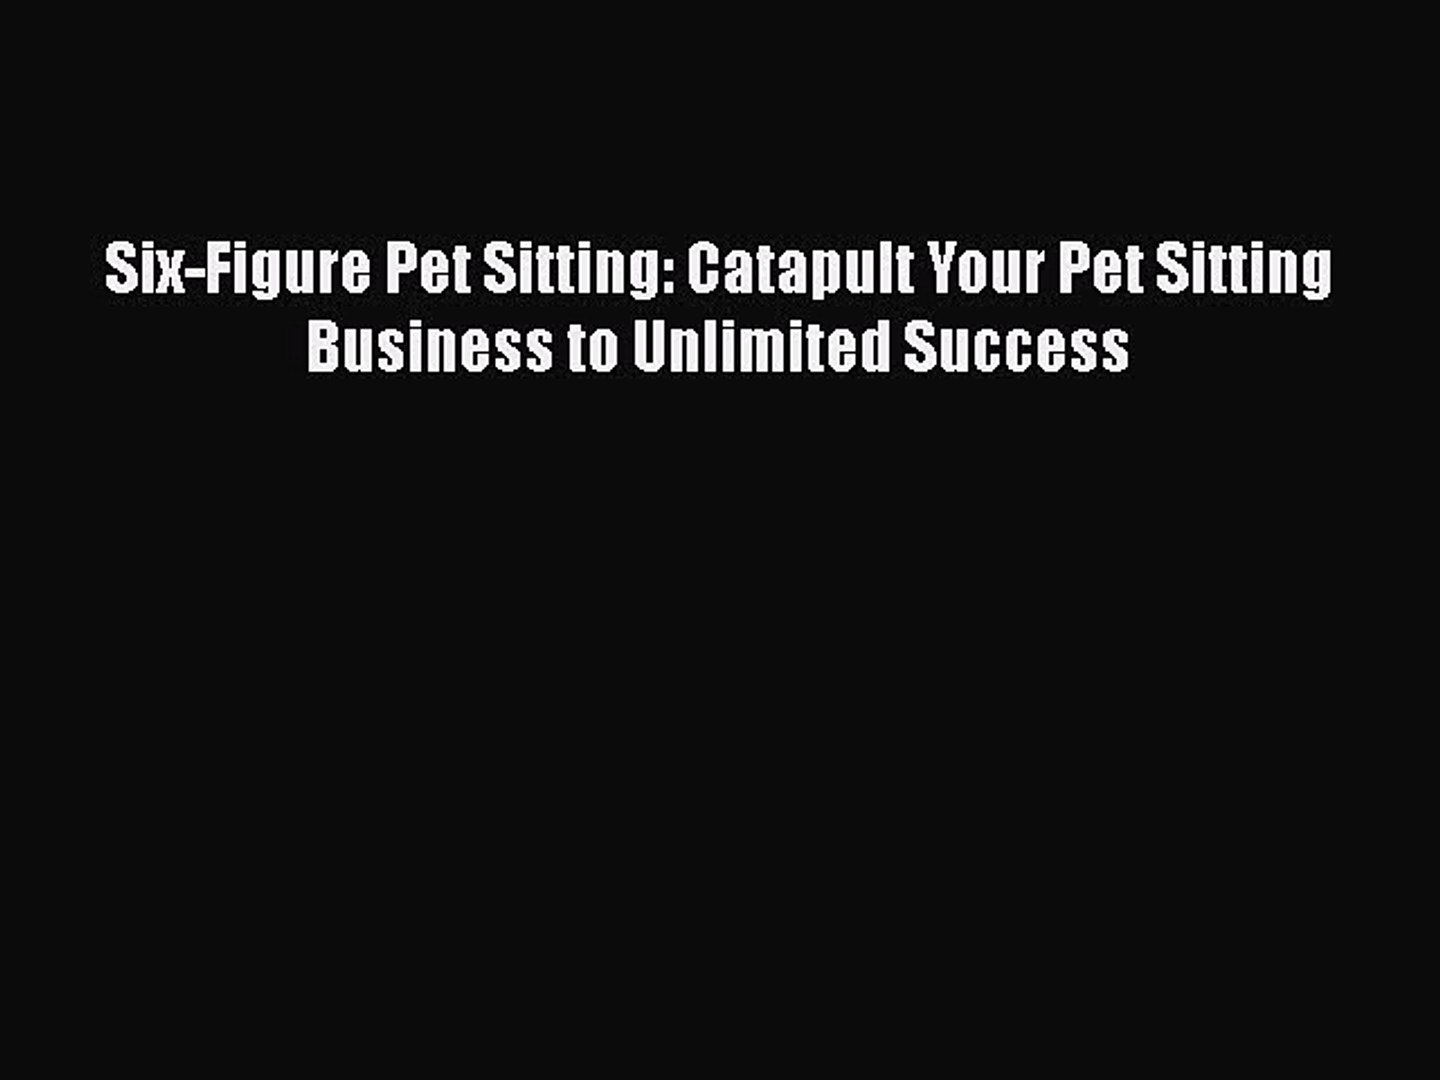 [PDF] Six-Figure Pet Sitting: Catapult Your Pet Sitting Business to Unlimited Success Free